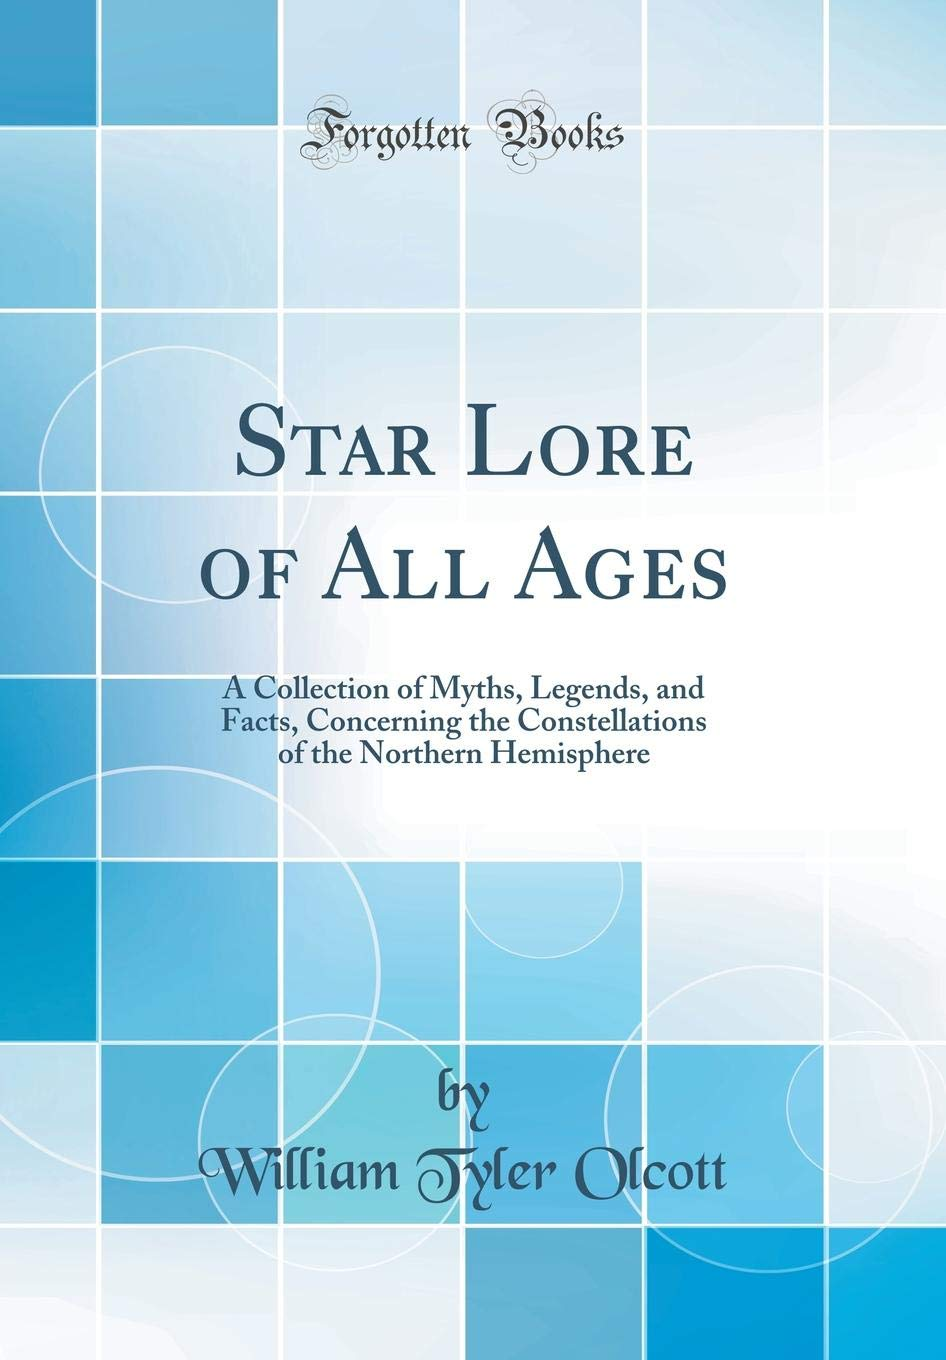 Star Lore of All Ages: A Collection of Myths, Legends, and Facts, Concerning the Constellations of the Northern Hemisphere (Classic Reprint) pdf